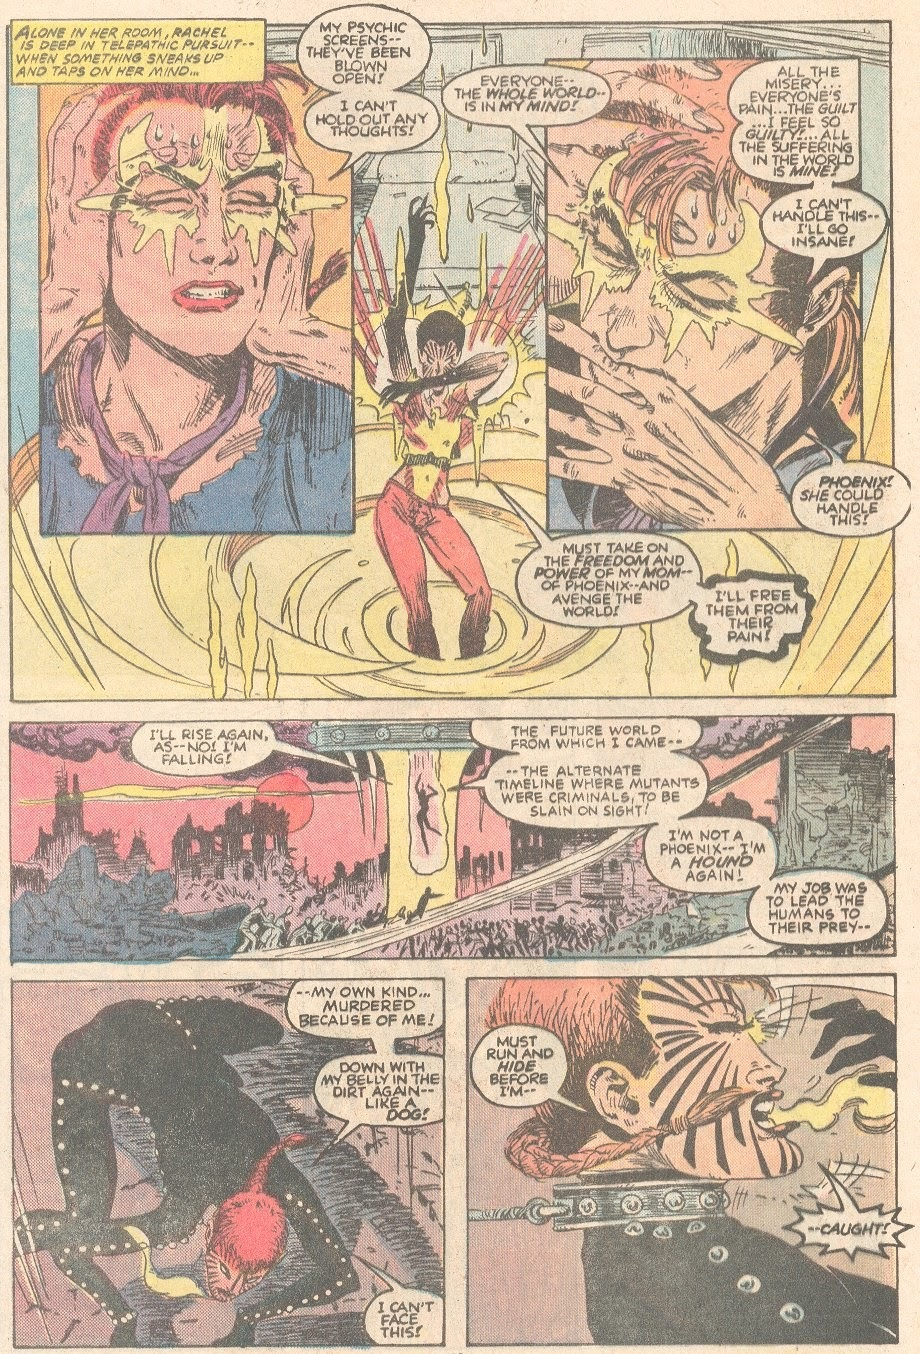 After her psychic blocks are blown, she is able to hear the entire world's pain - Heroes for Hope #1